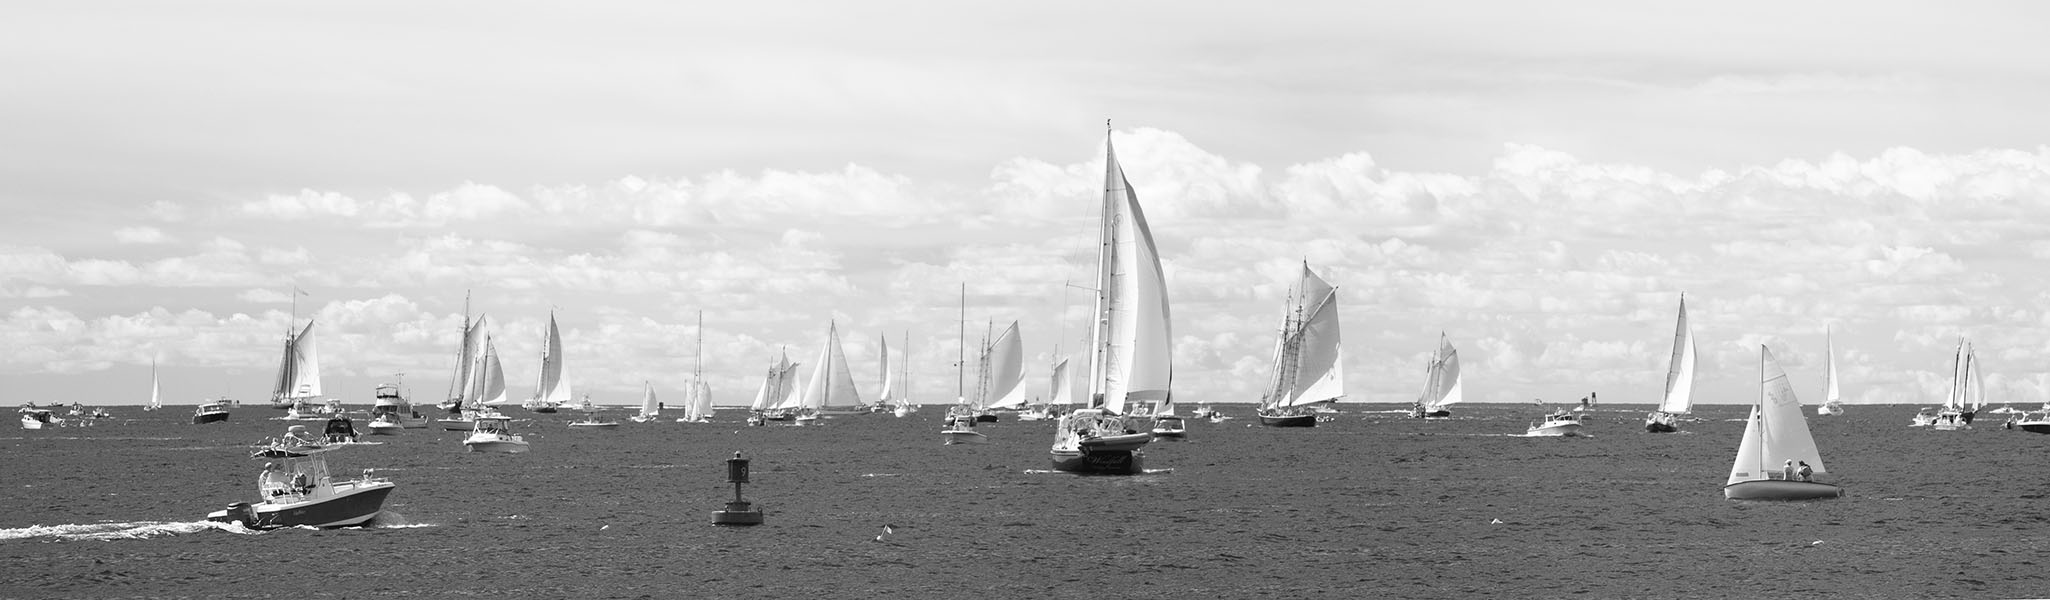 Infrared Panoramic Photo of Sailboots in Gloucester Harbor During the Schooner Festival, 2019.